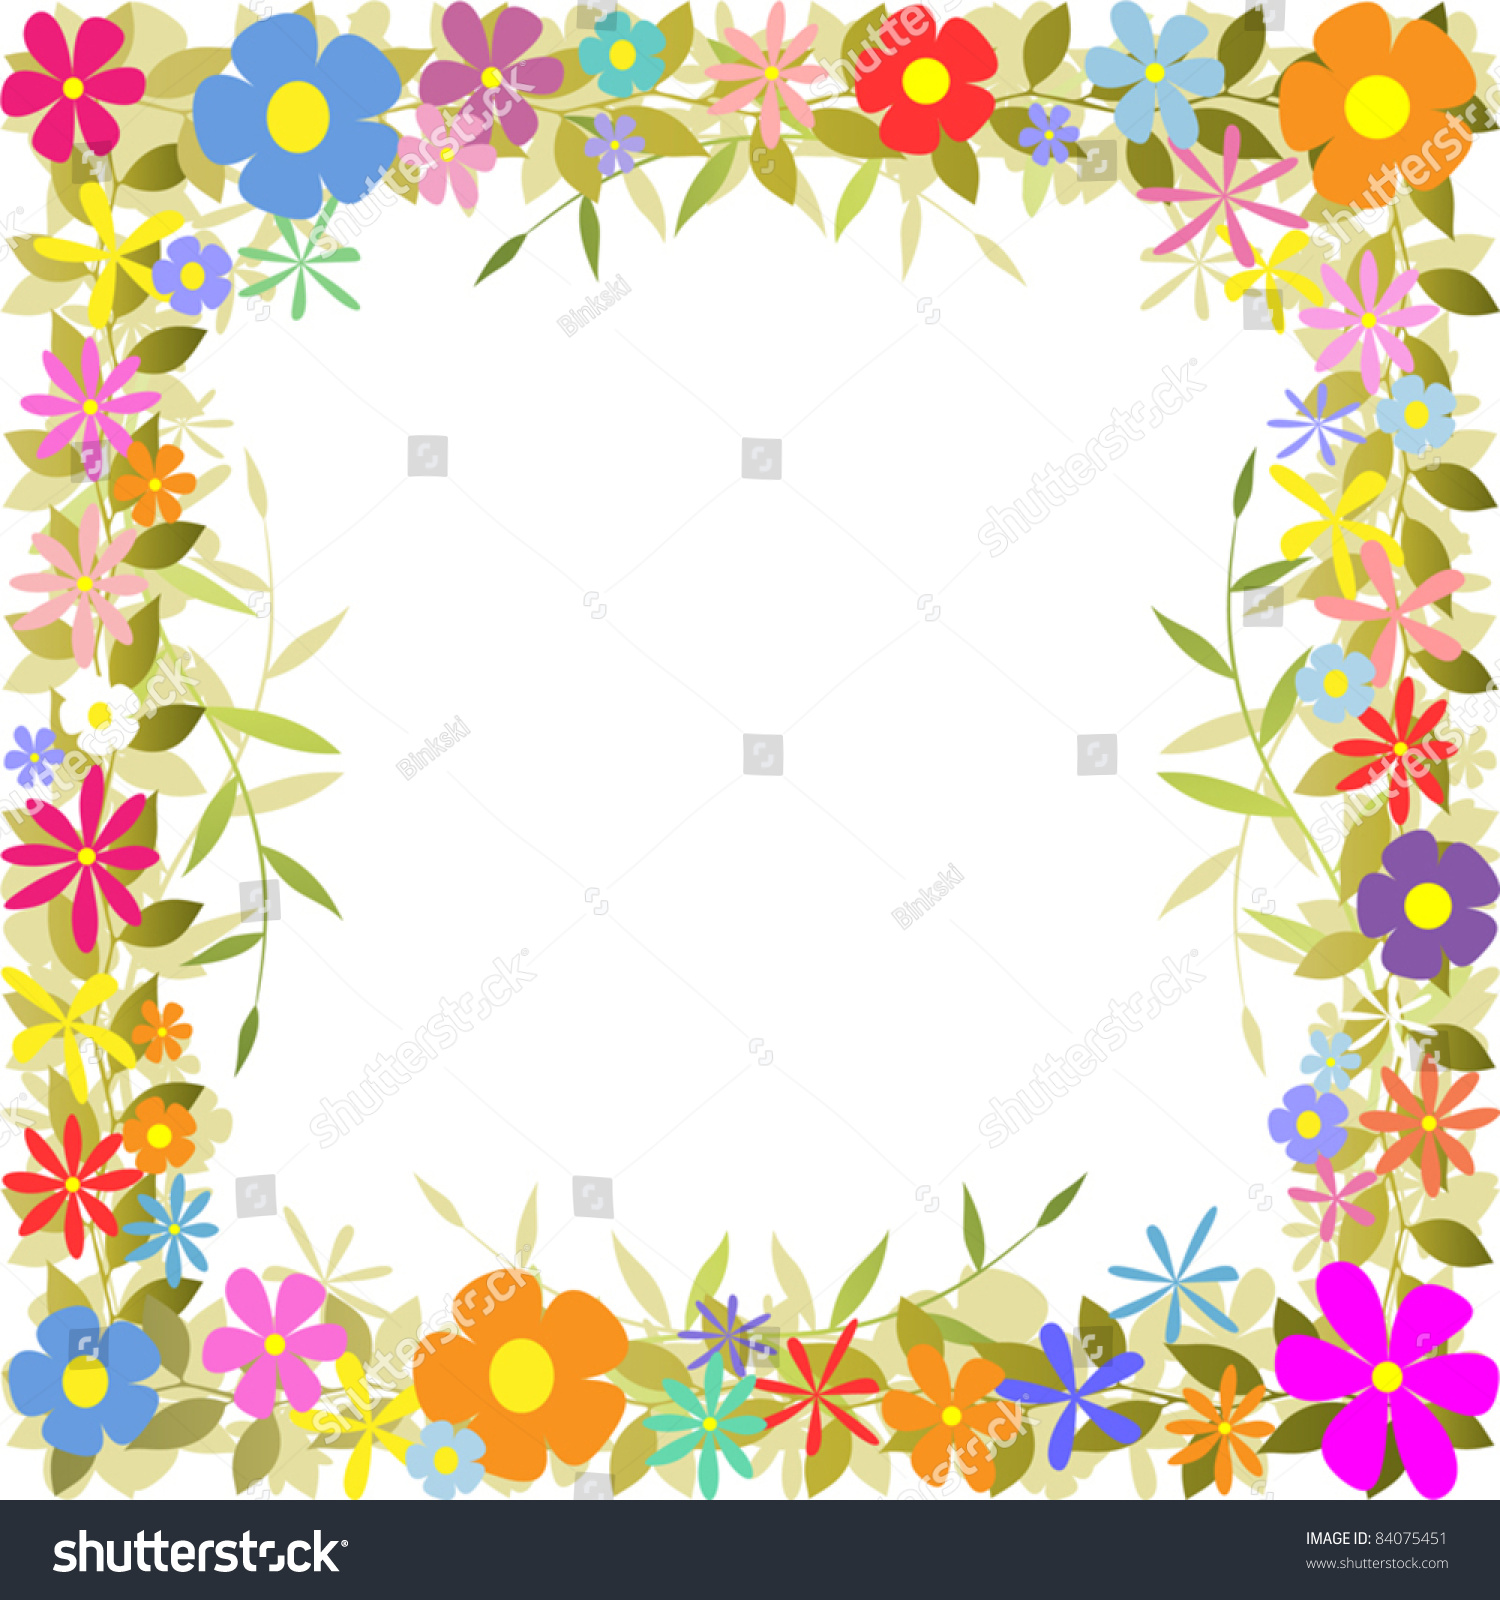 Cute Bordered Pastel Flower Wallpaper Floral Border Flowers Leaves Stock Vector 84075451